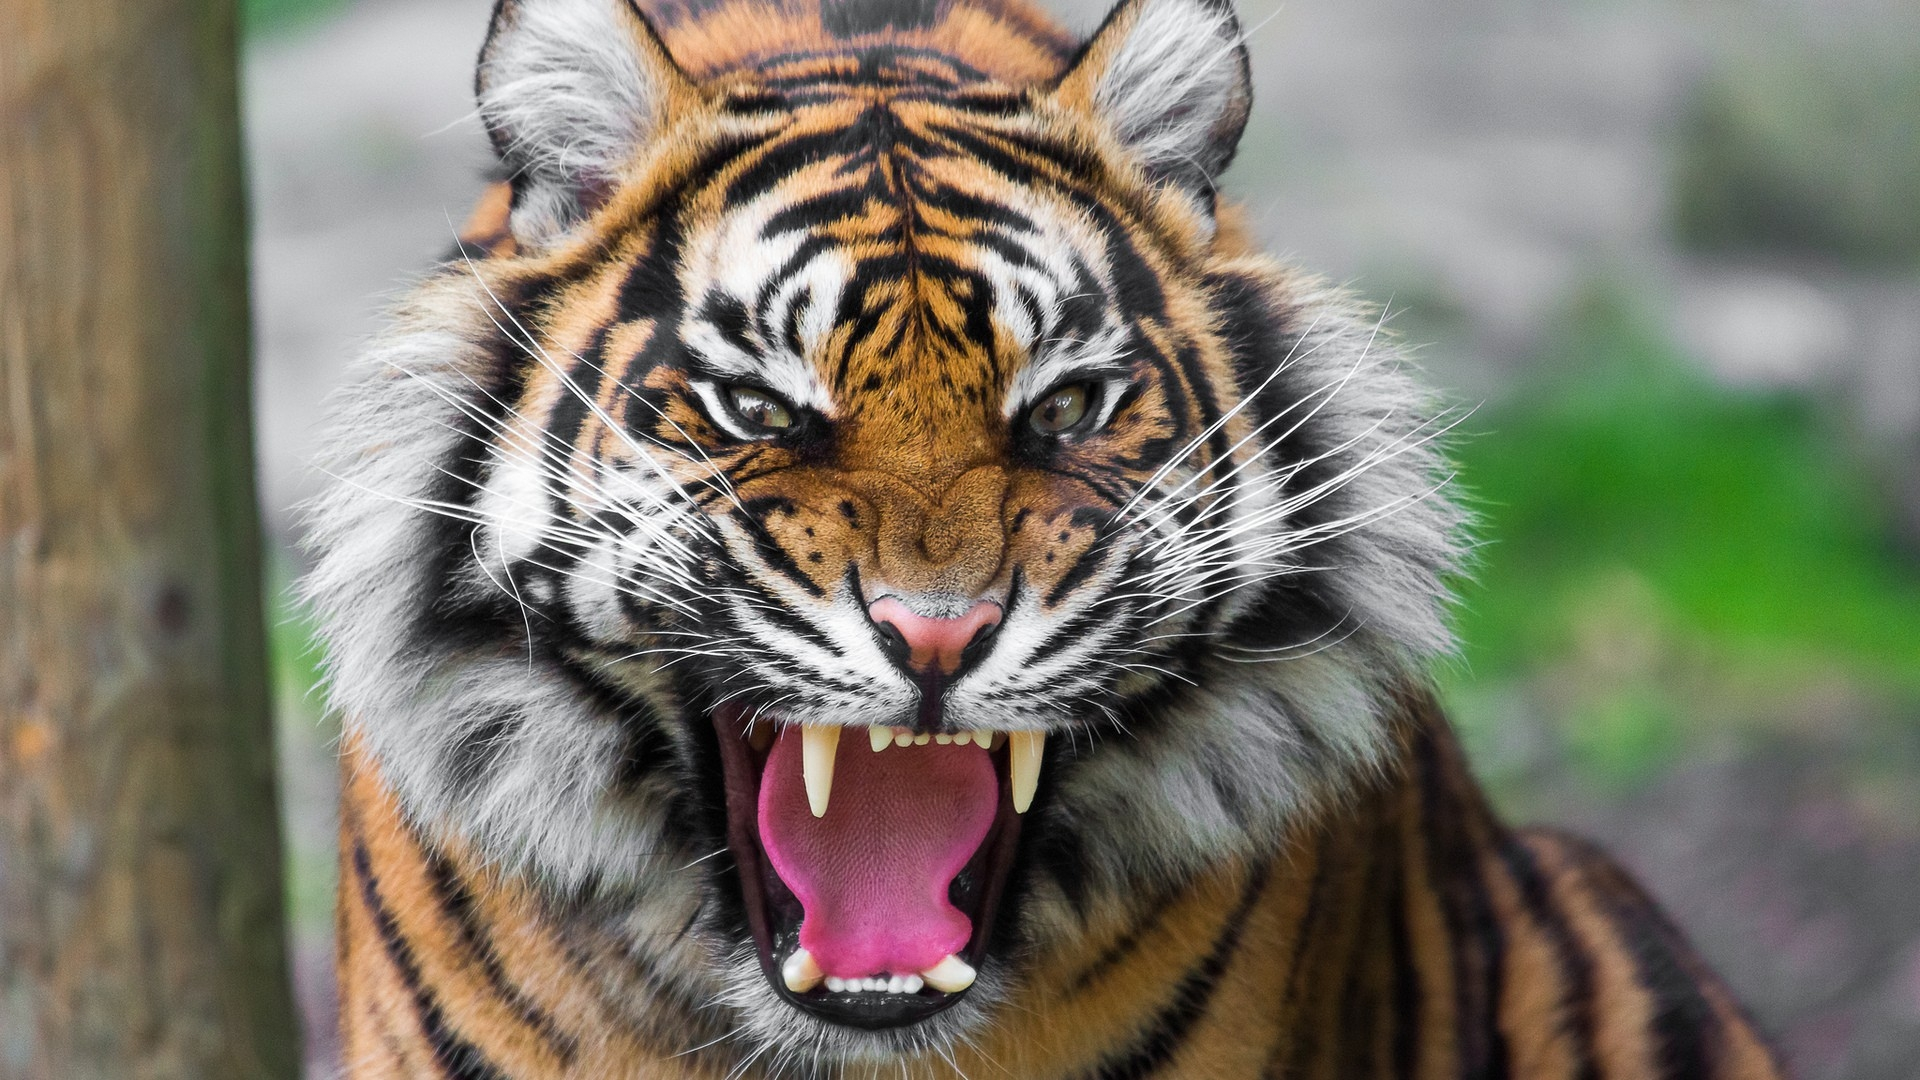 tiger hd wallpapers 1920x1080 - sf wallpaper